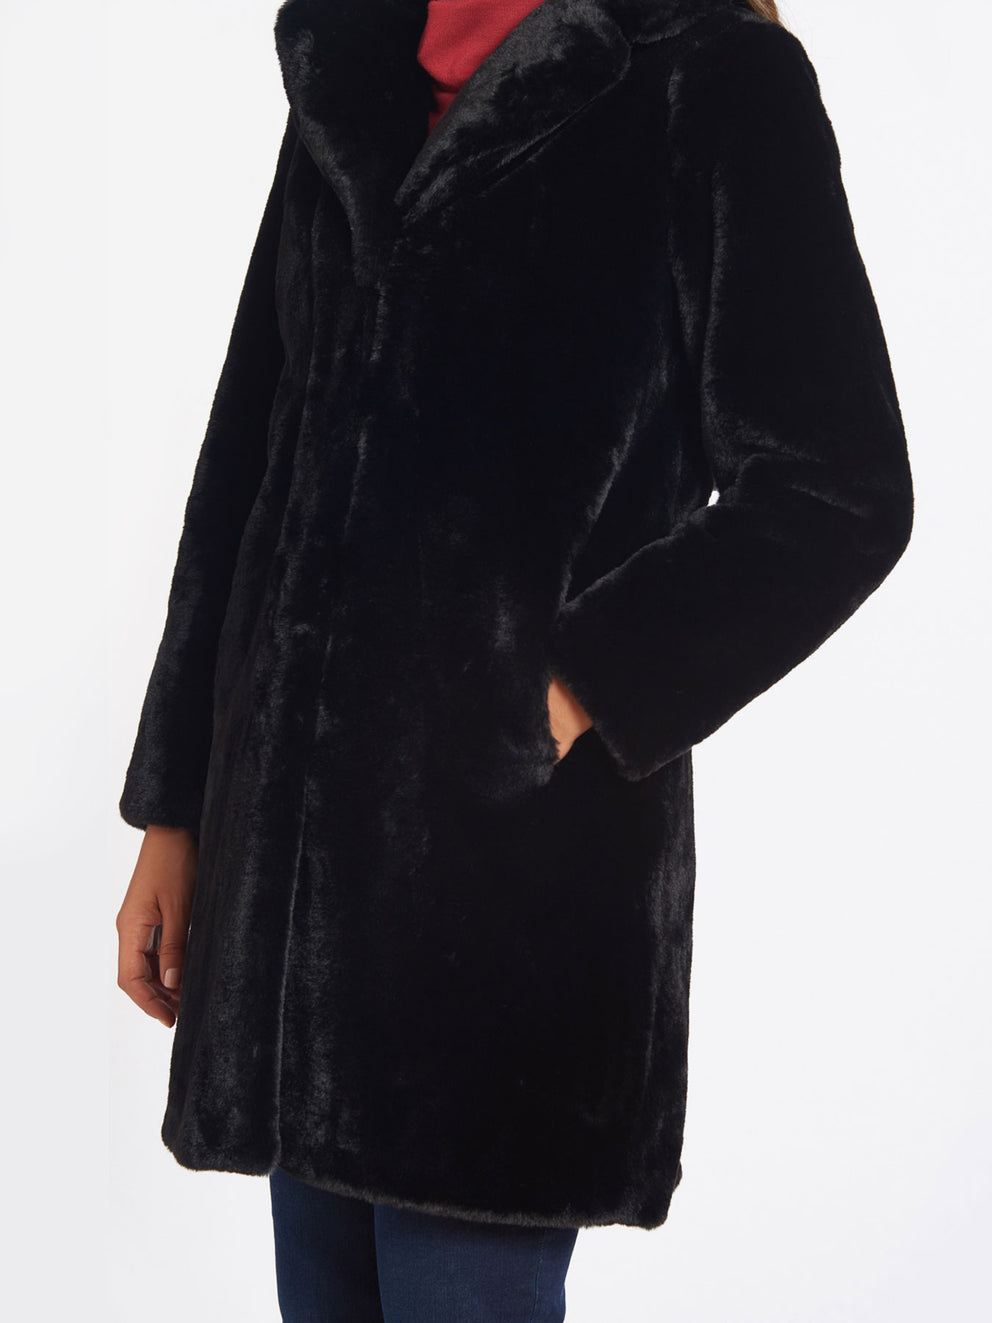 The Jones New York Faux Fur Jacket in color Black - Image Position 3